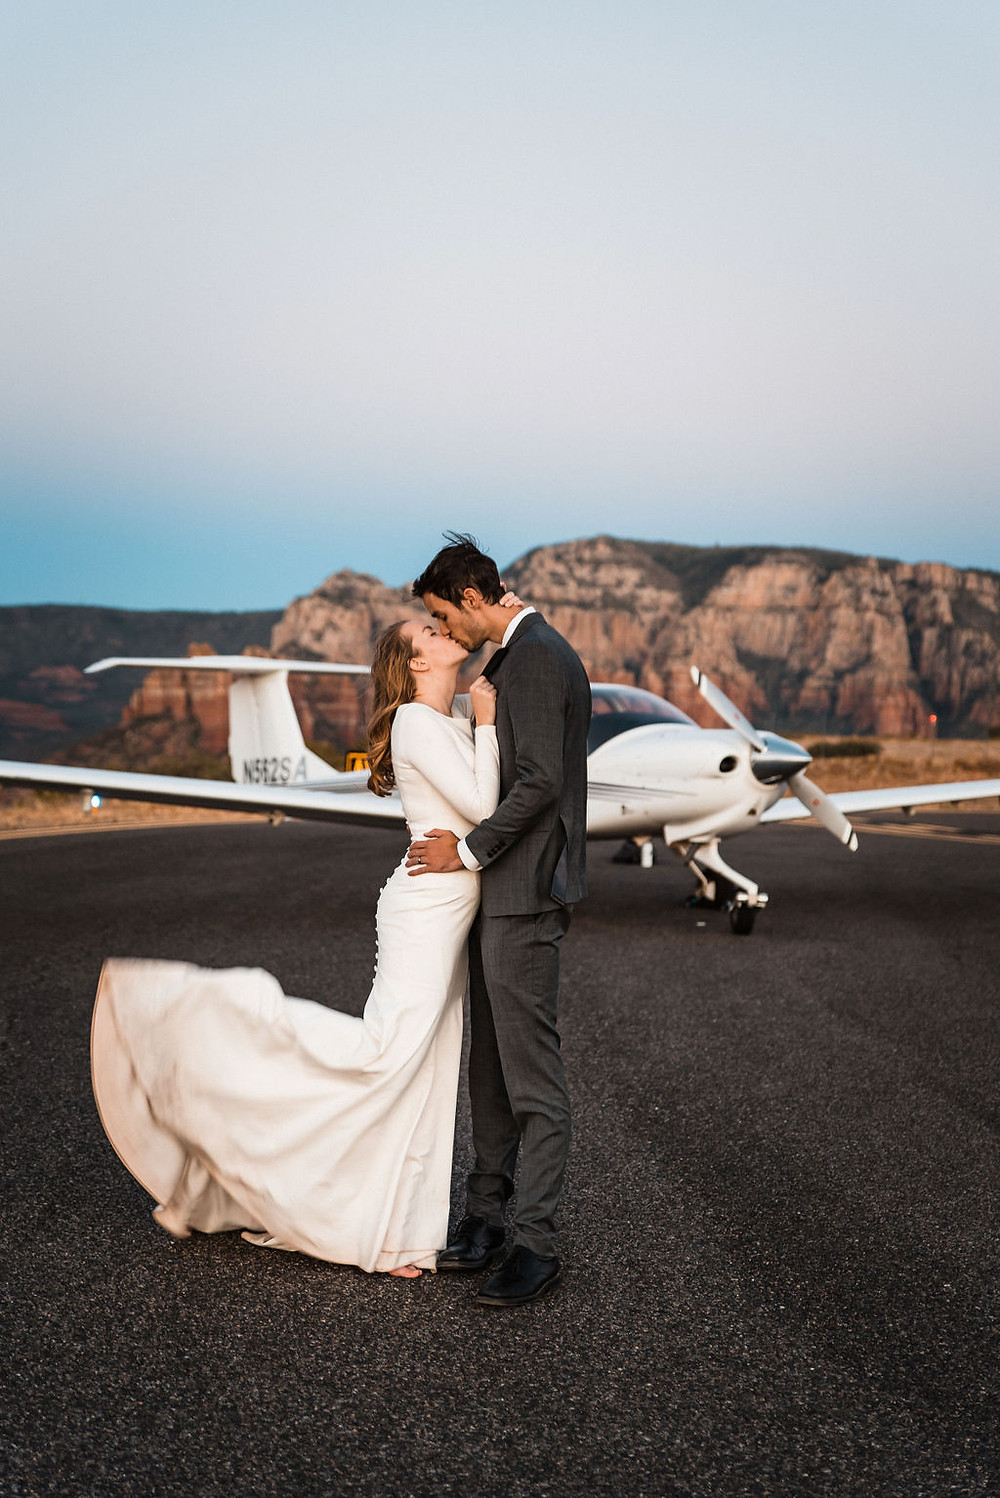 A couple on their elopement day in front of a plane in Sedona